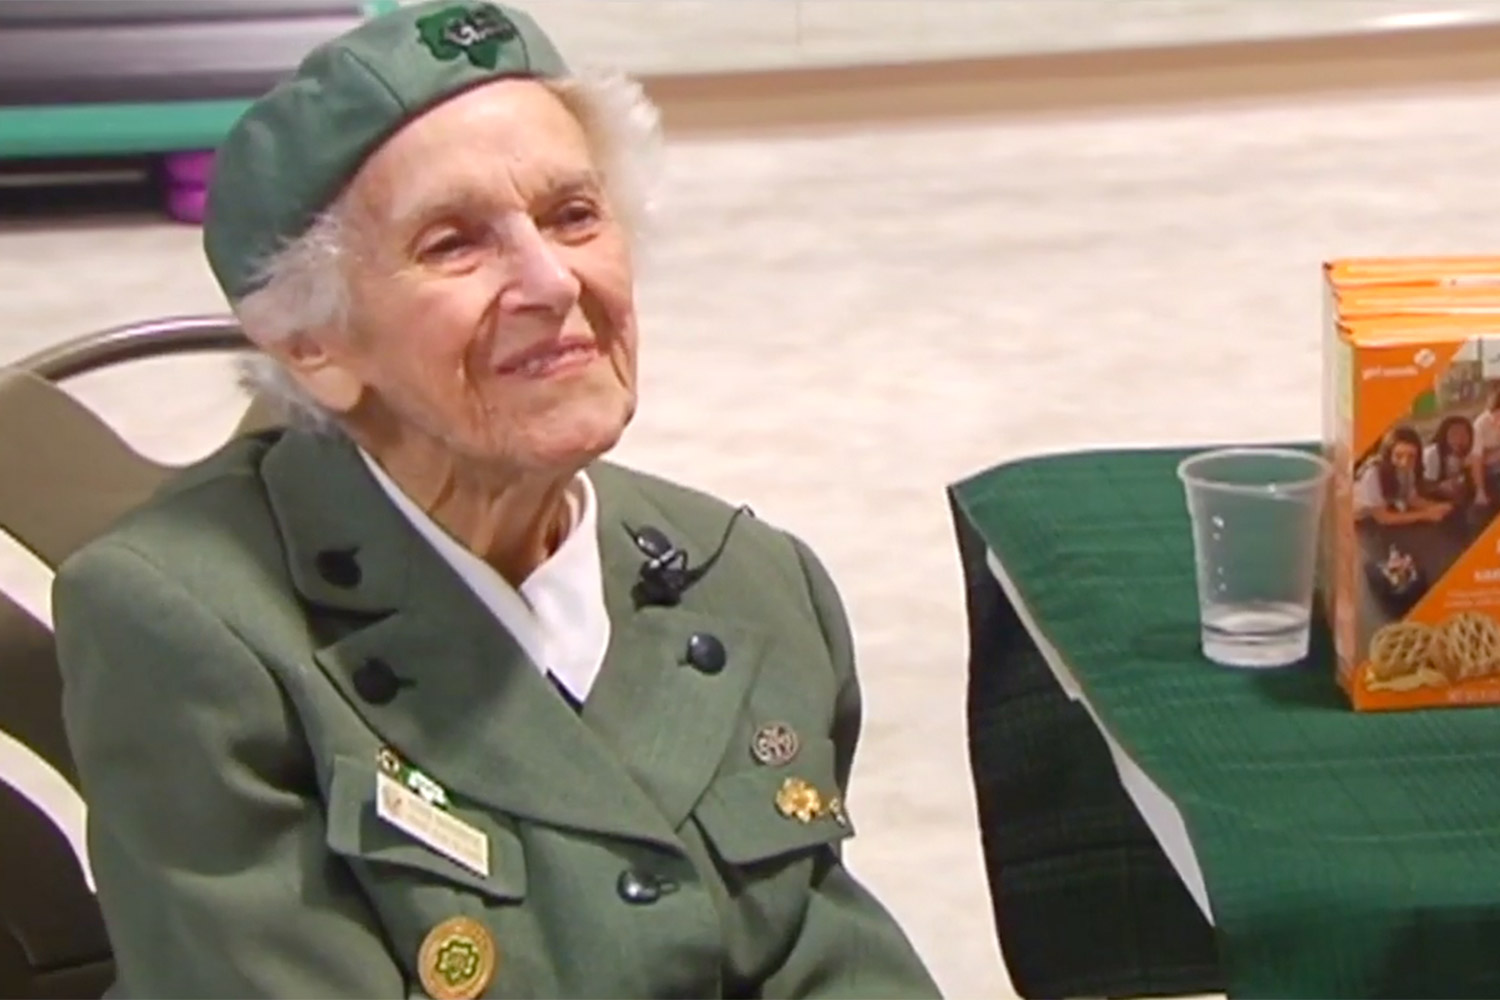 Meet the 98-Year-Old Girl Scout Trying to Sell as Many Cookies as She Can